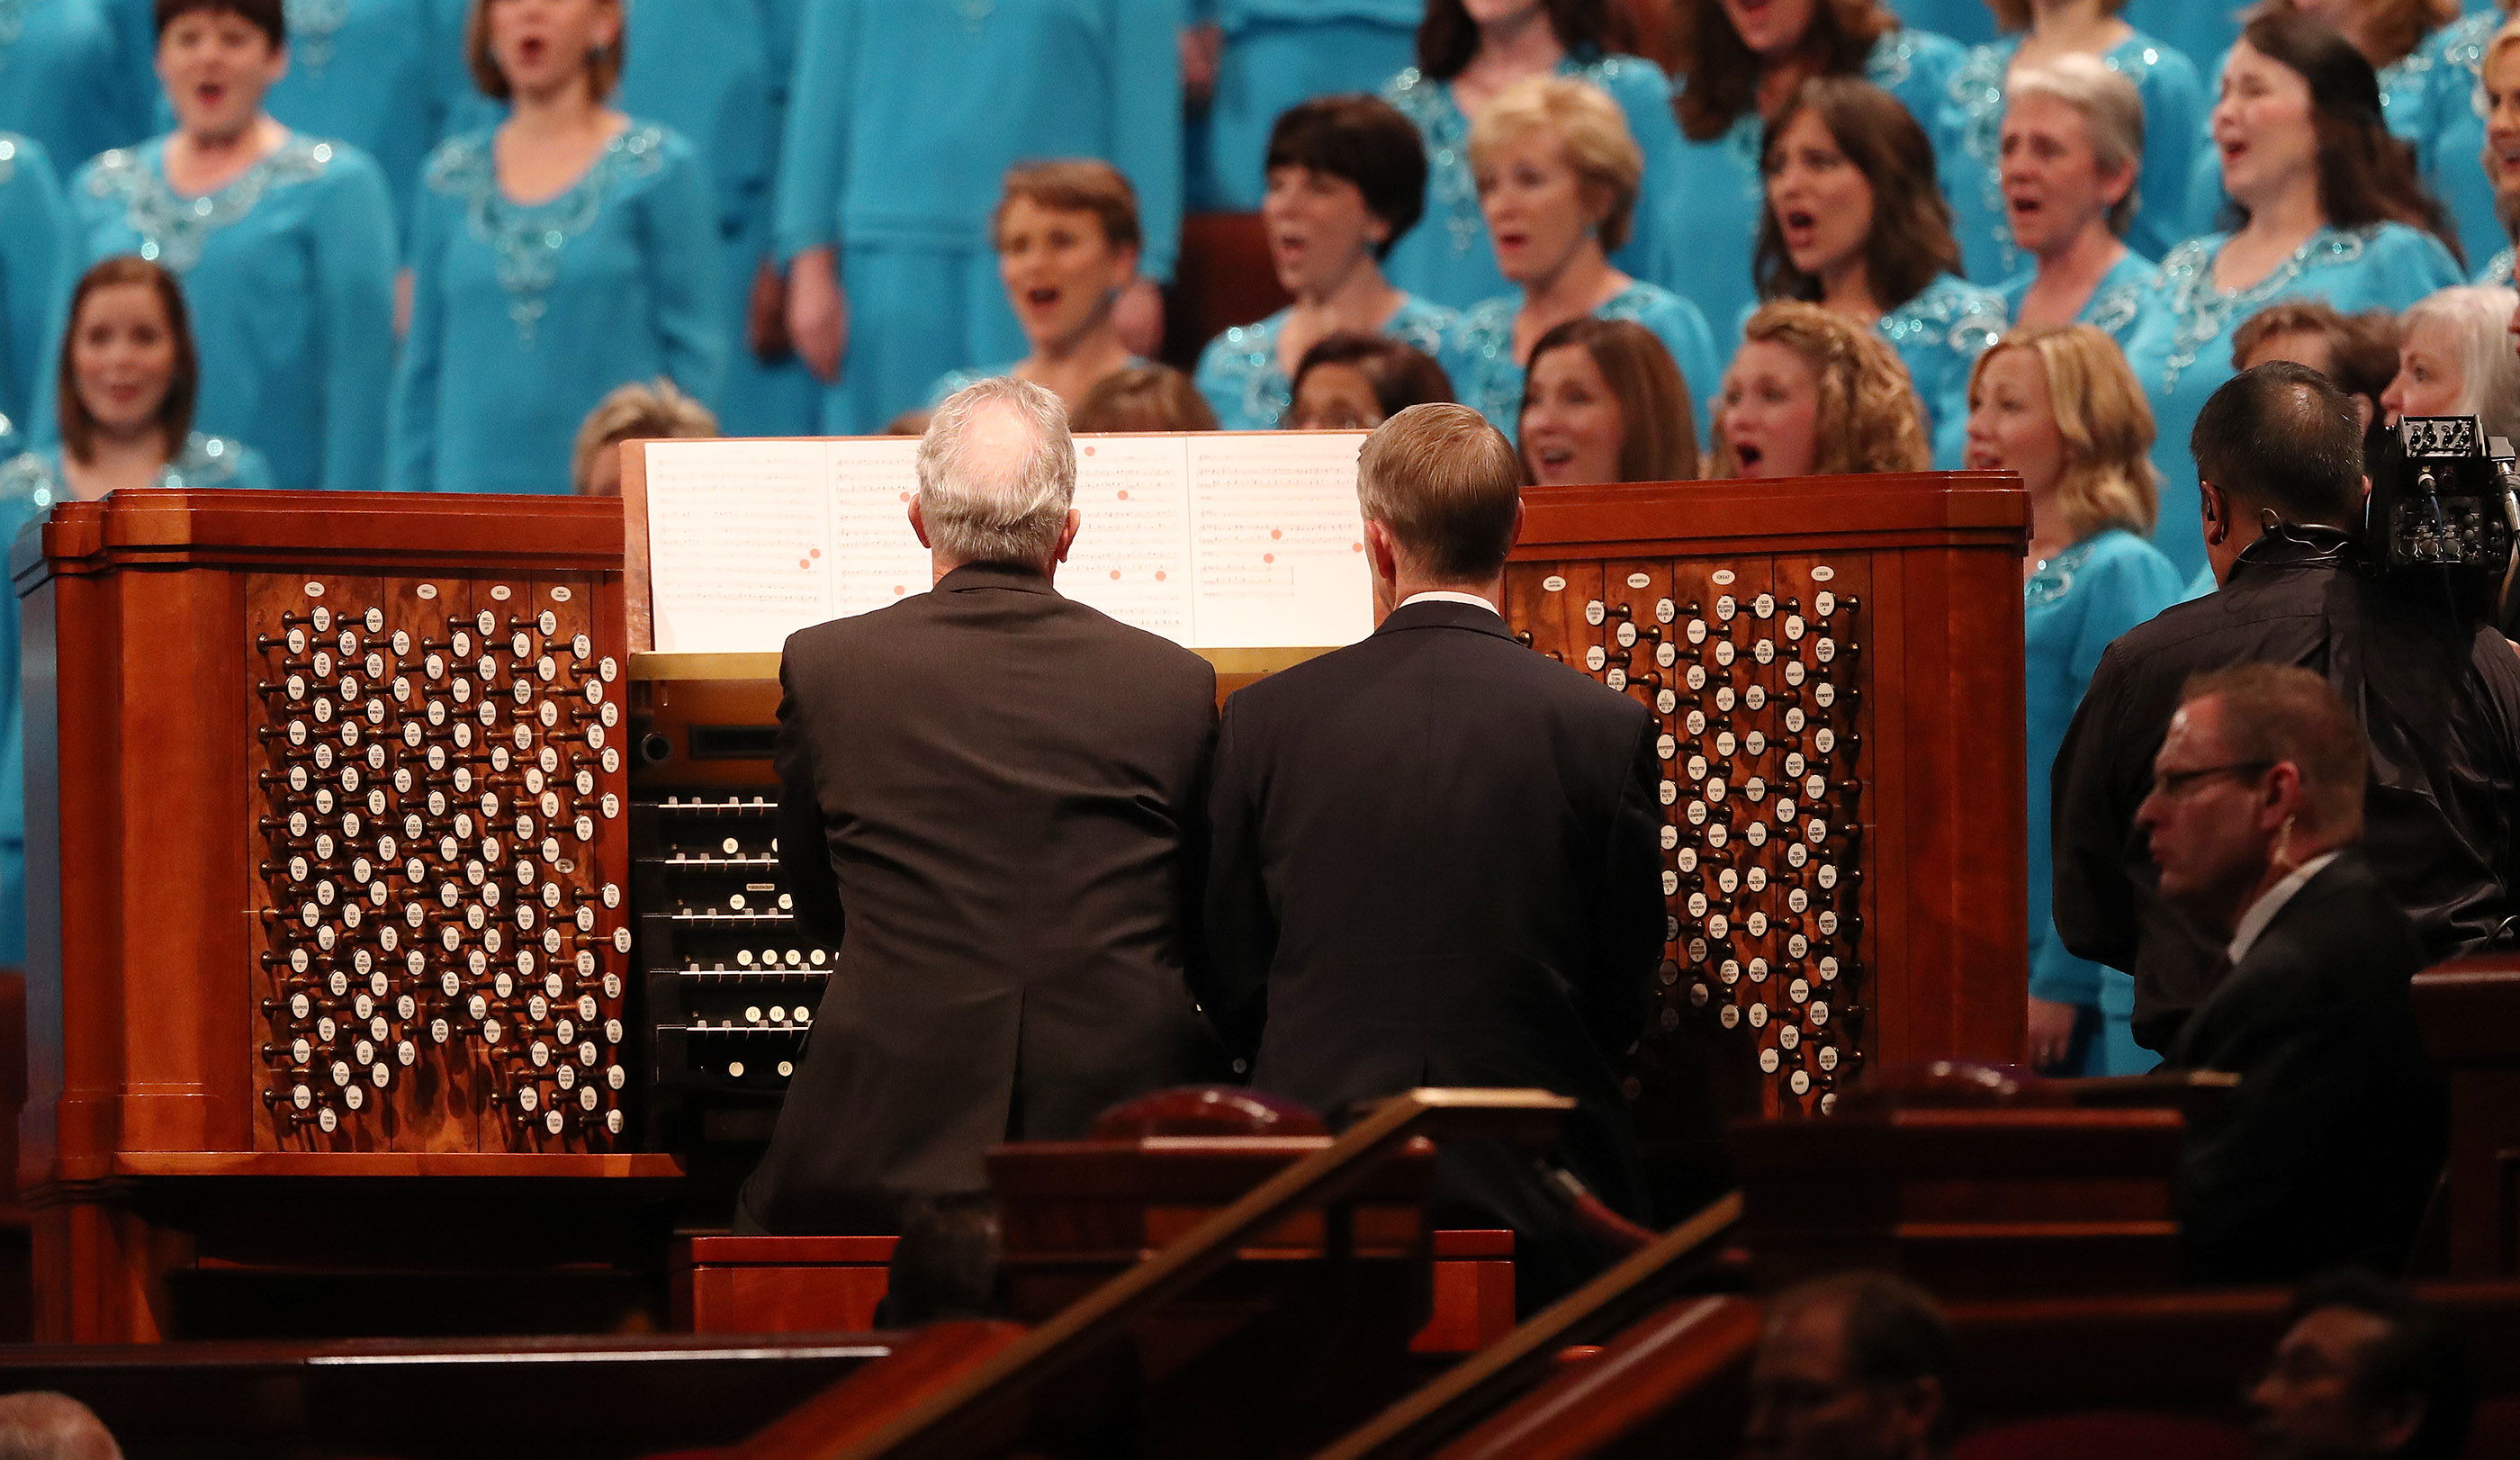 Organists Richard Elliott and Andrew Unsworth play during the 188th Semiannual General Conference of The Church of Jesus Christ of Latter-day Saints in Salt Lake City on Sunday, Oct. 7, 2018.